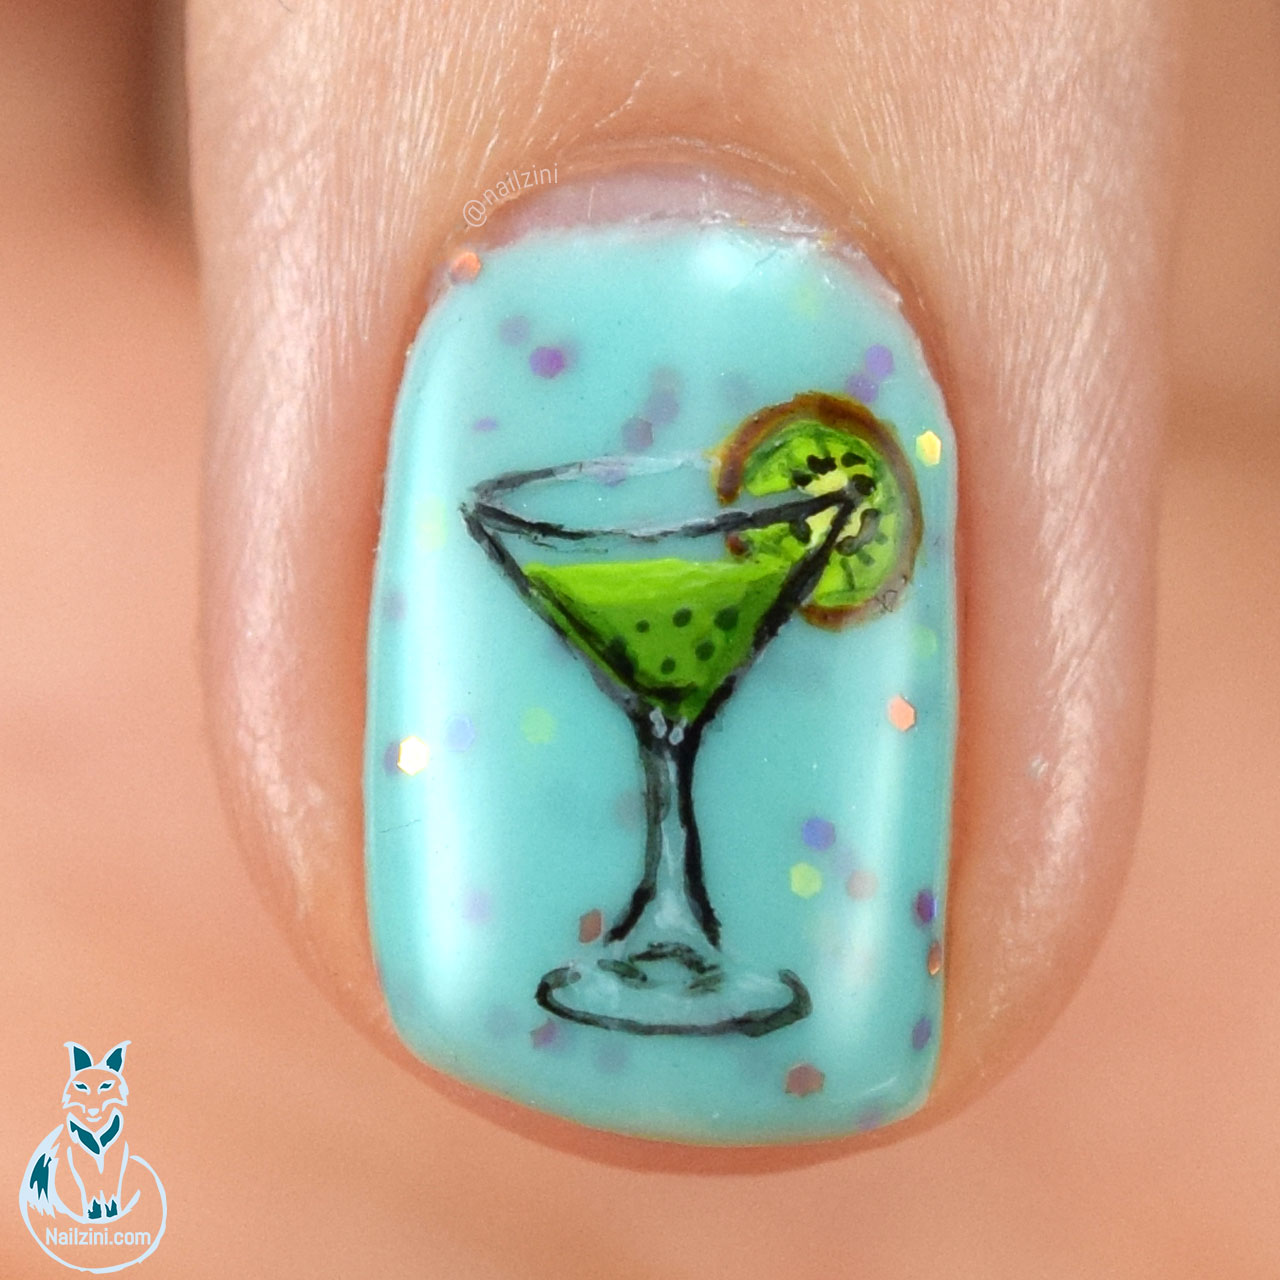 Kiwi Daiquiri Madam Glam Nailzini